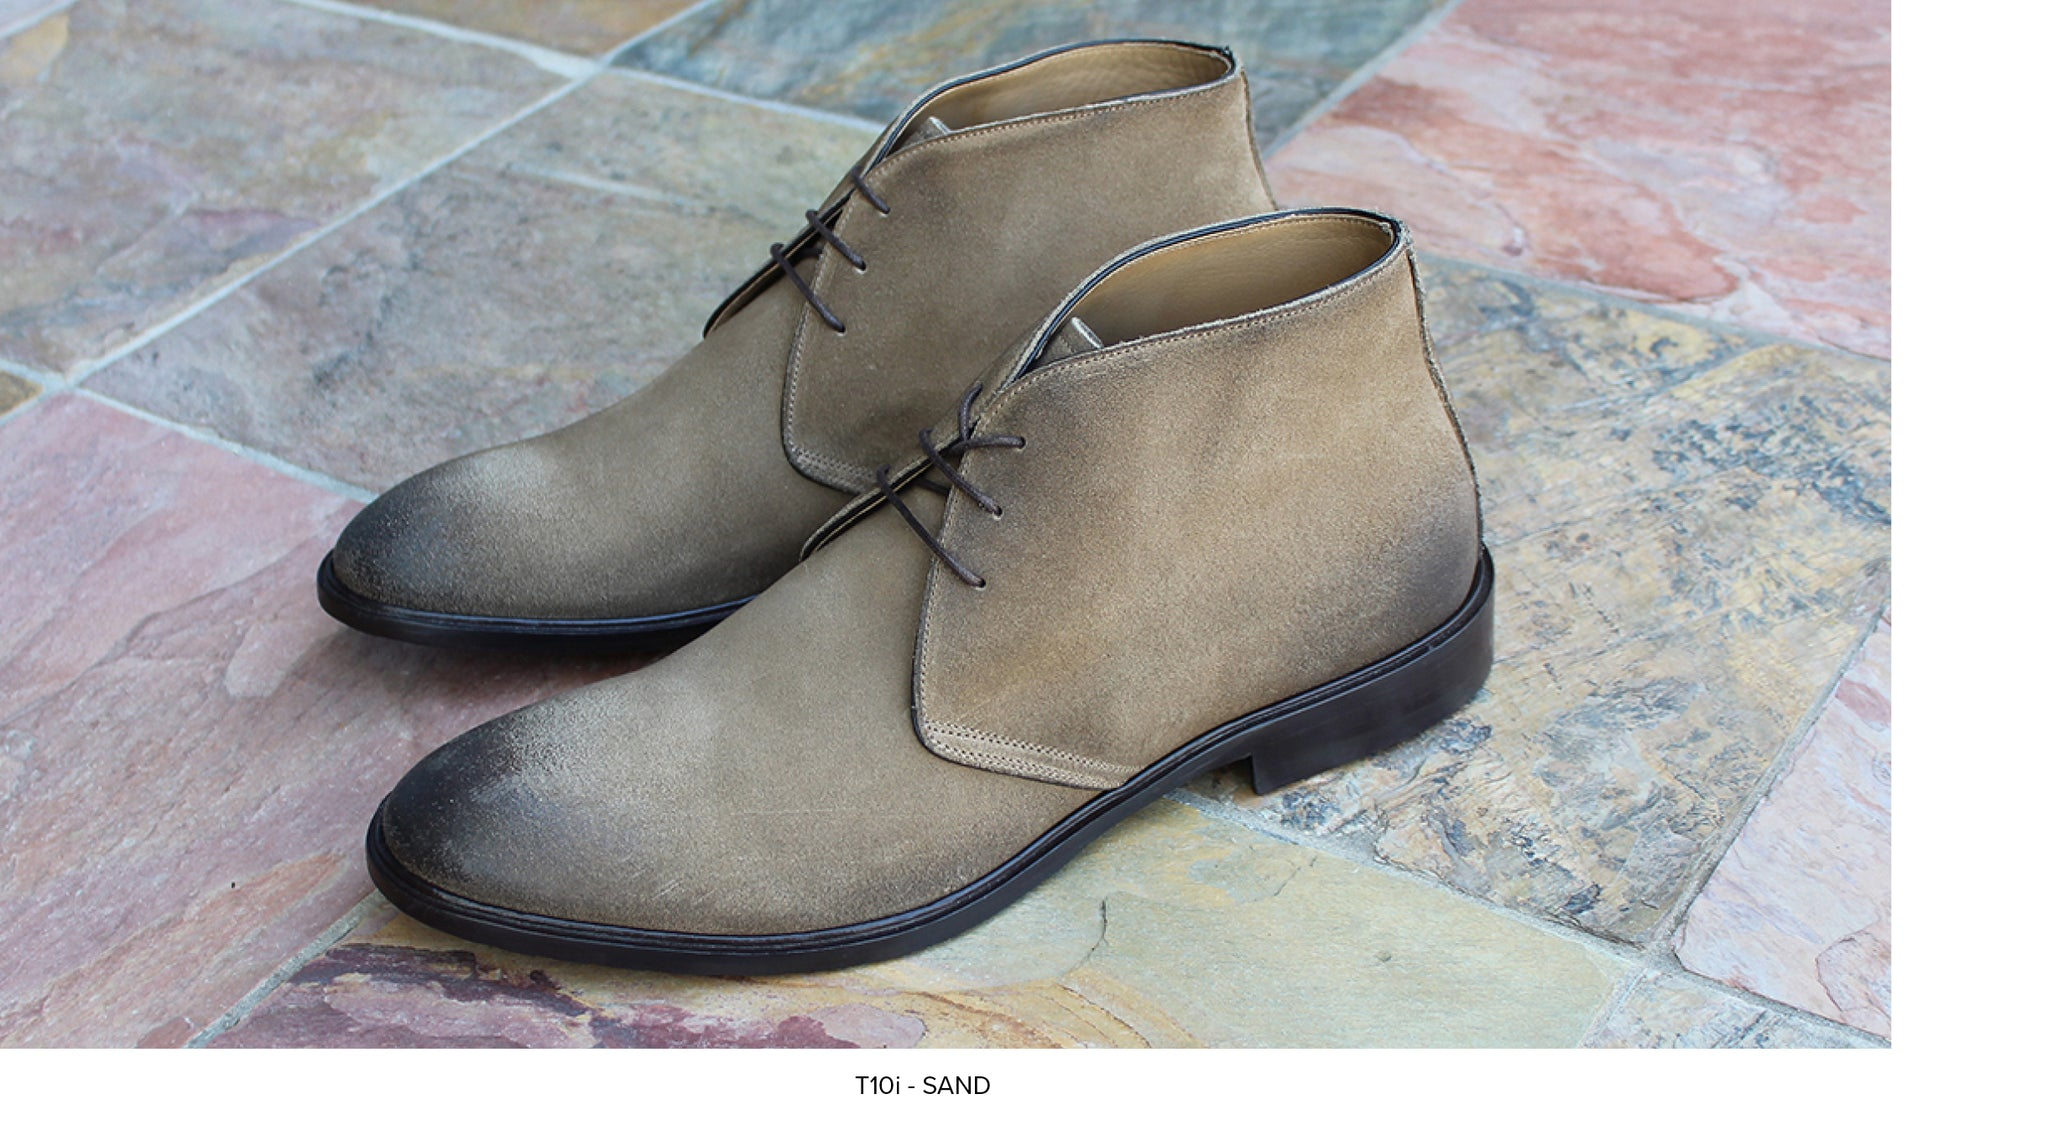 T10i Chukka Boot in Sand by Blake McKay